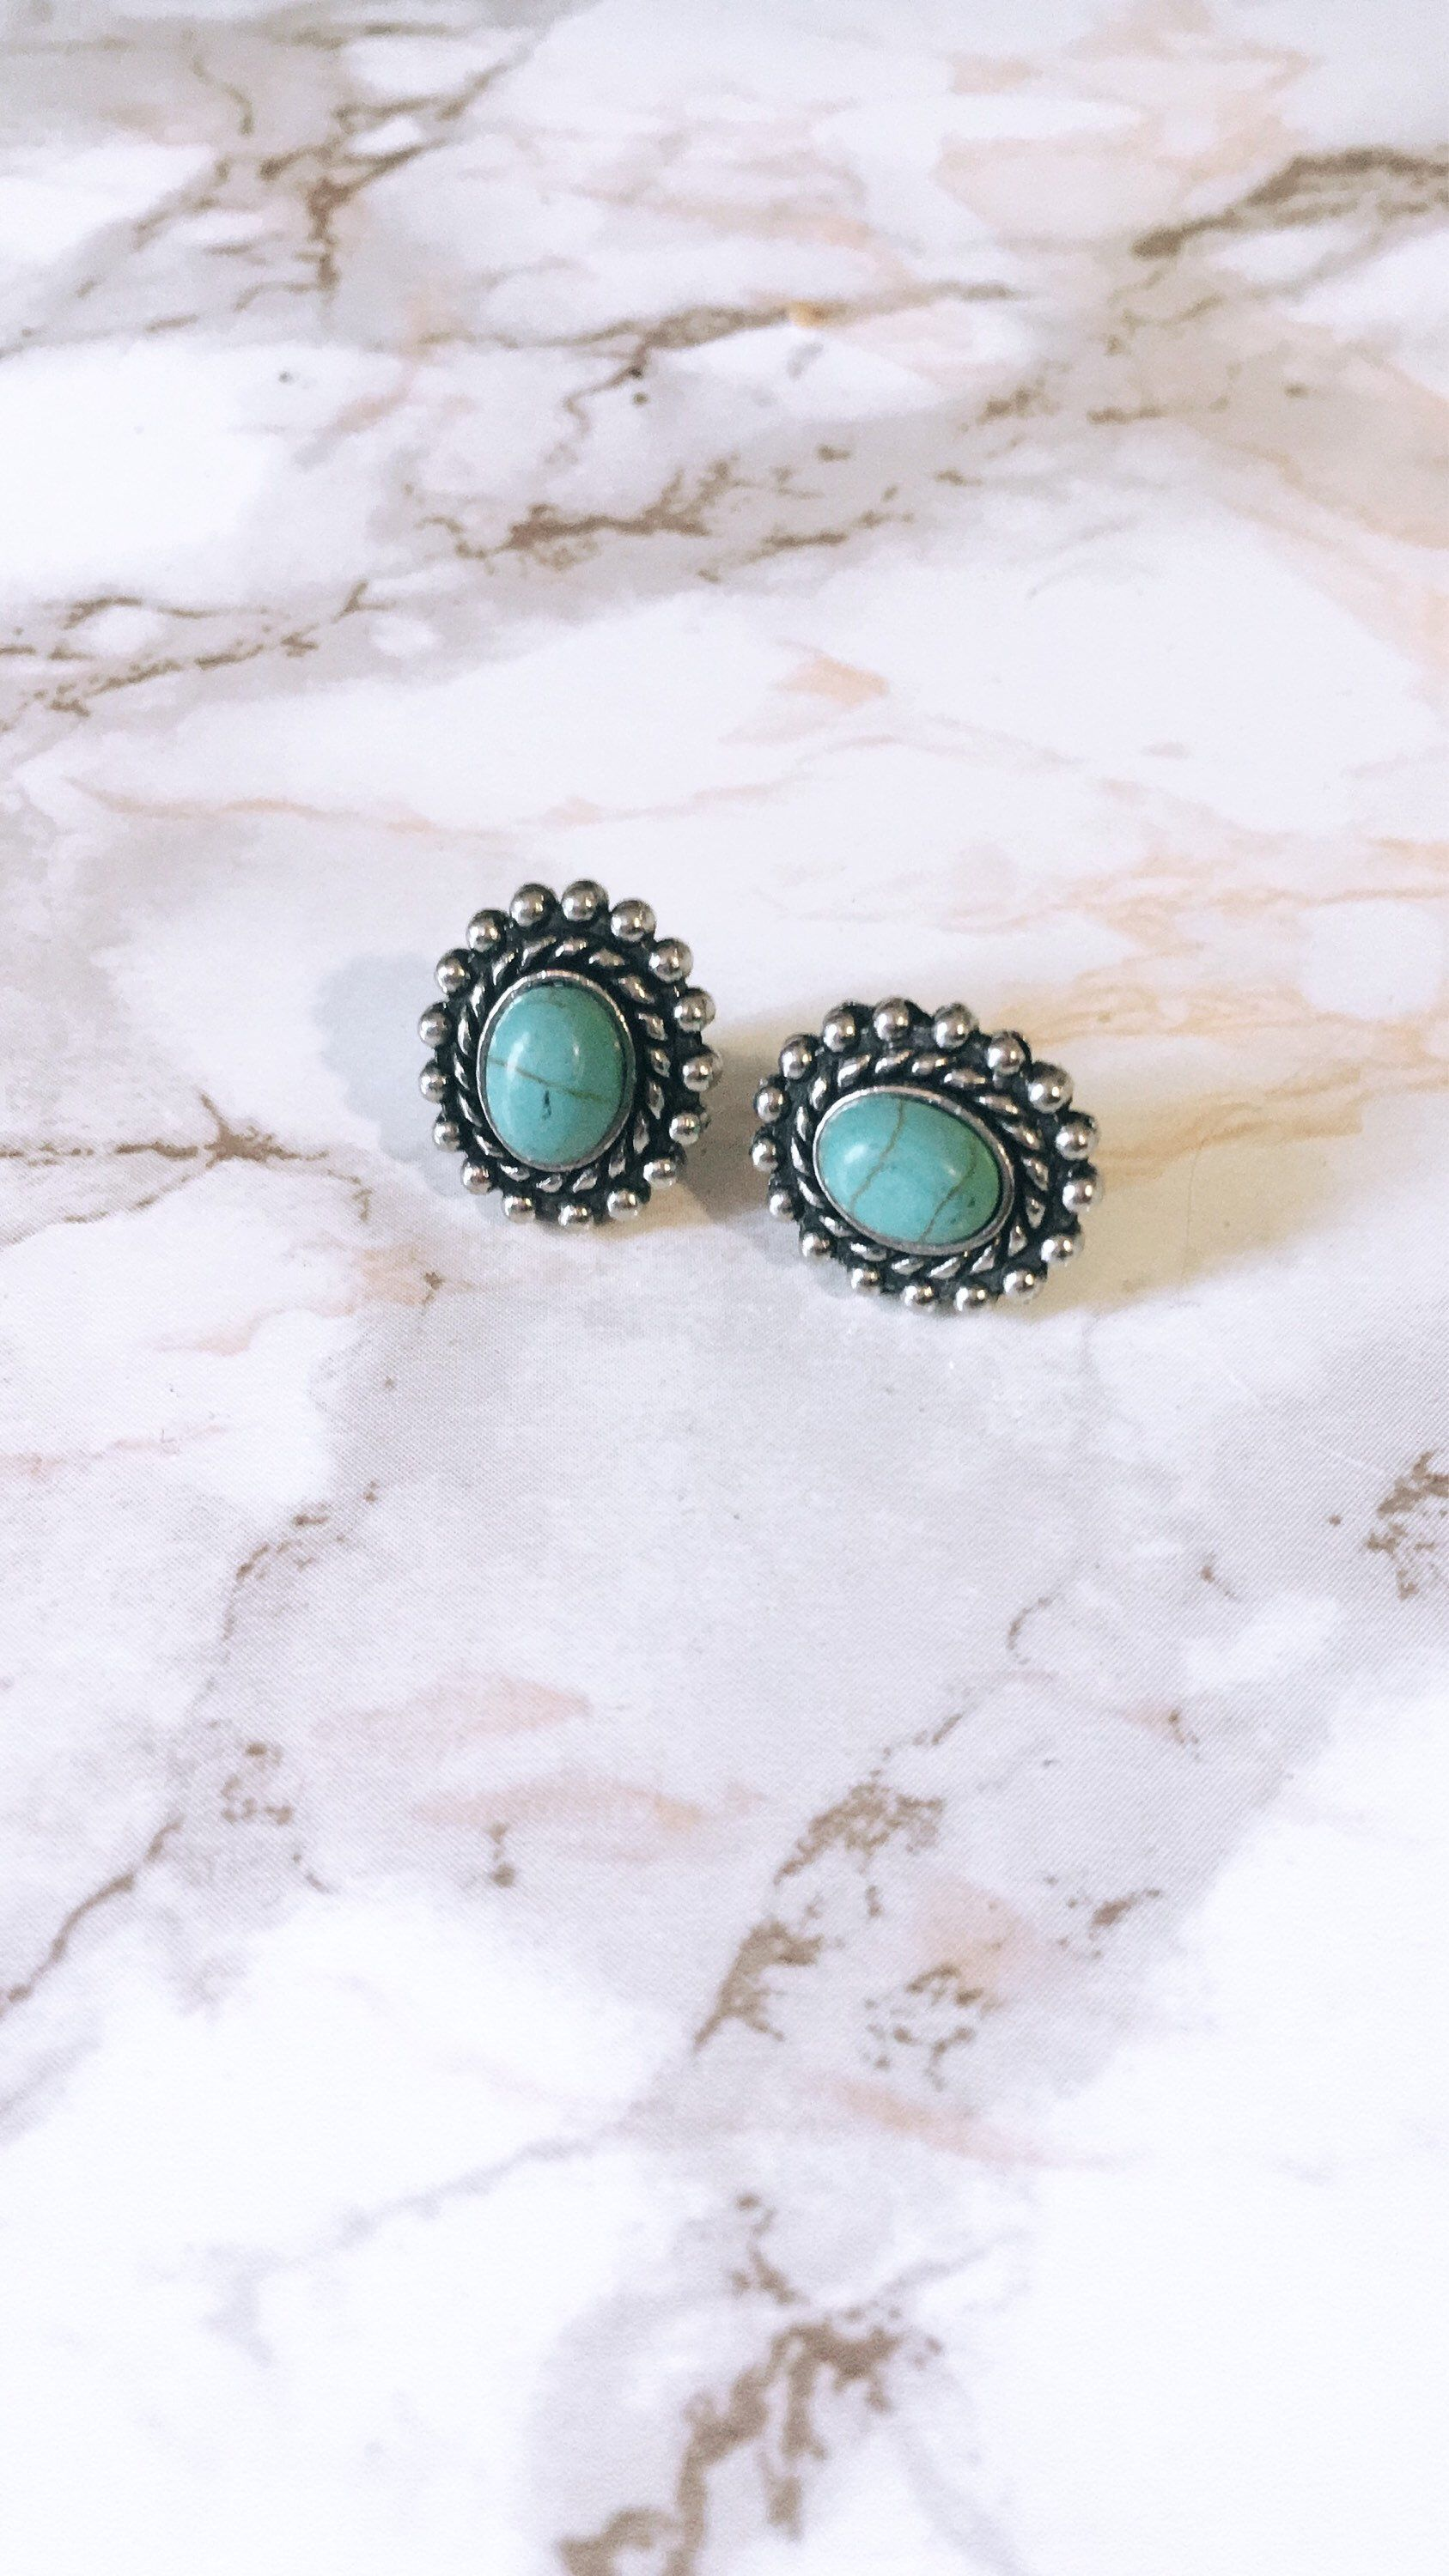 stud crystal moran products earring designer earrings turquoise marcia retail discounts dsc